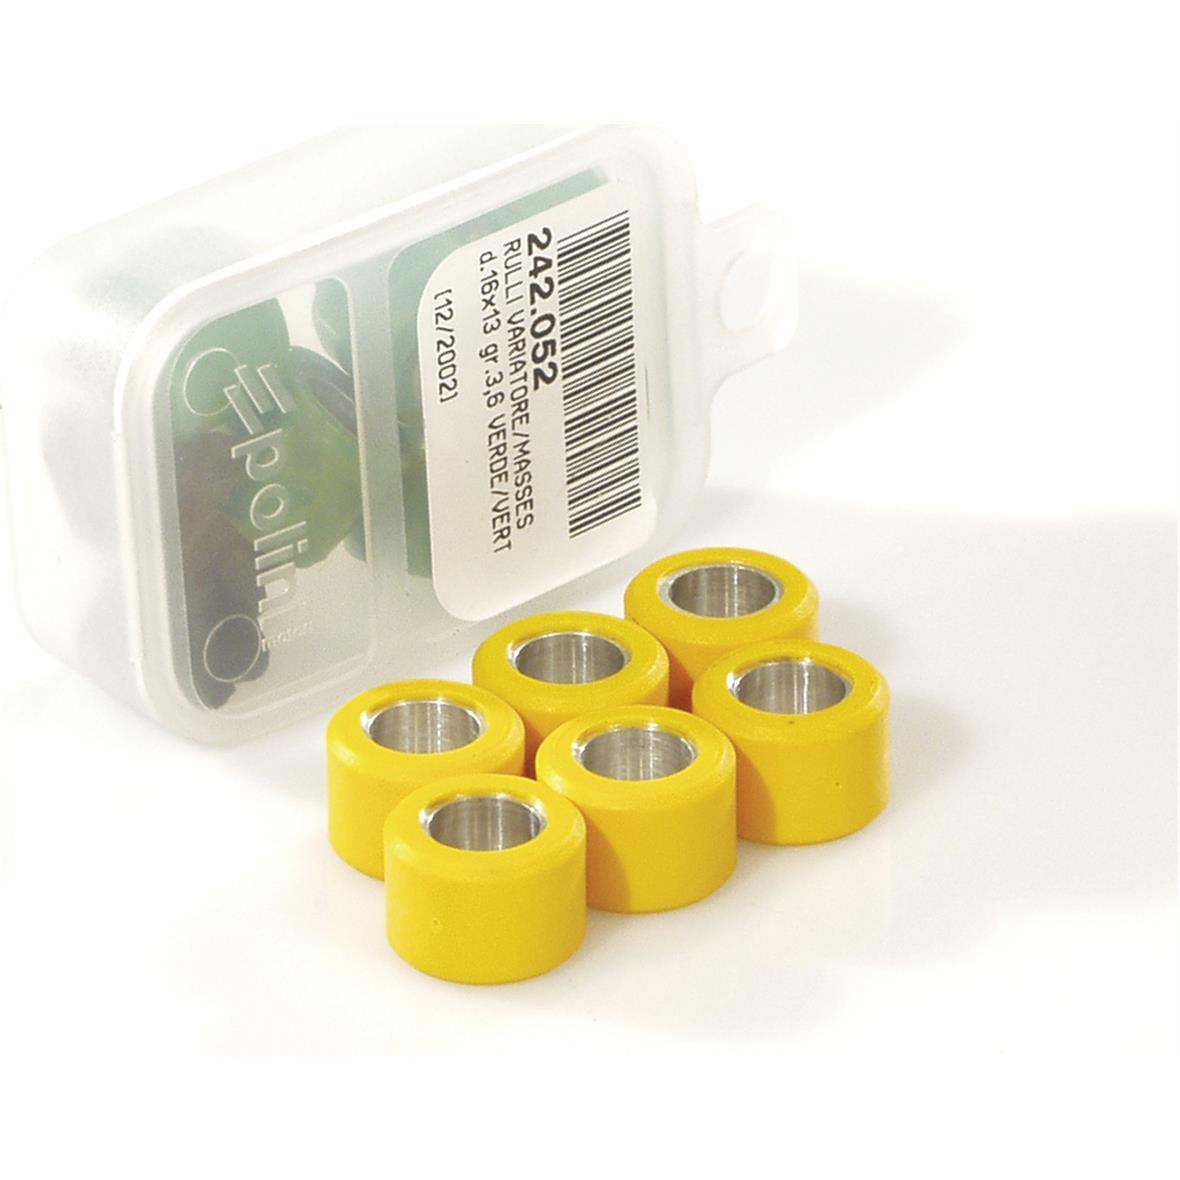 Product Image for 'Variator Rollers POLINI 15x12 mm 8,8gTitle'